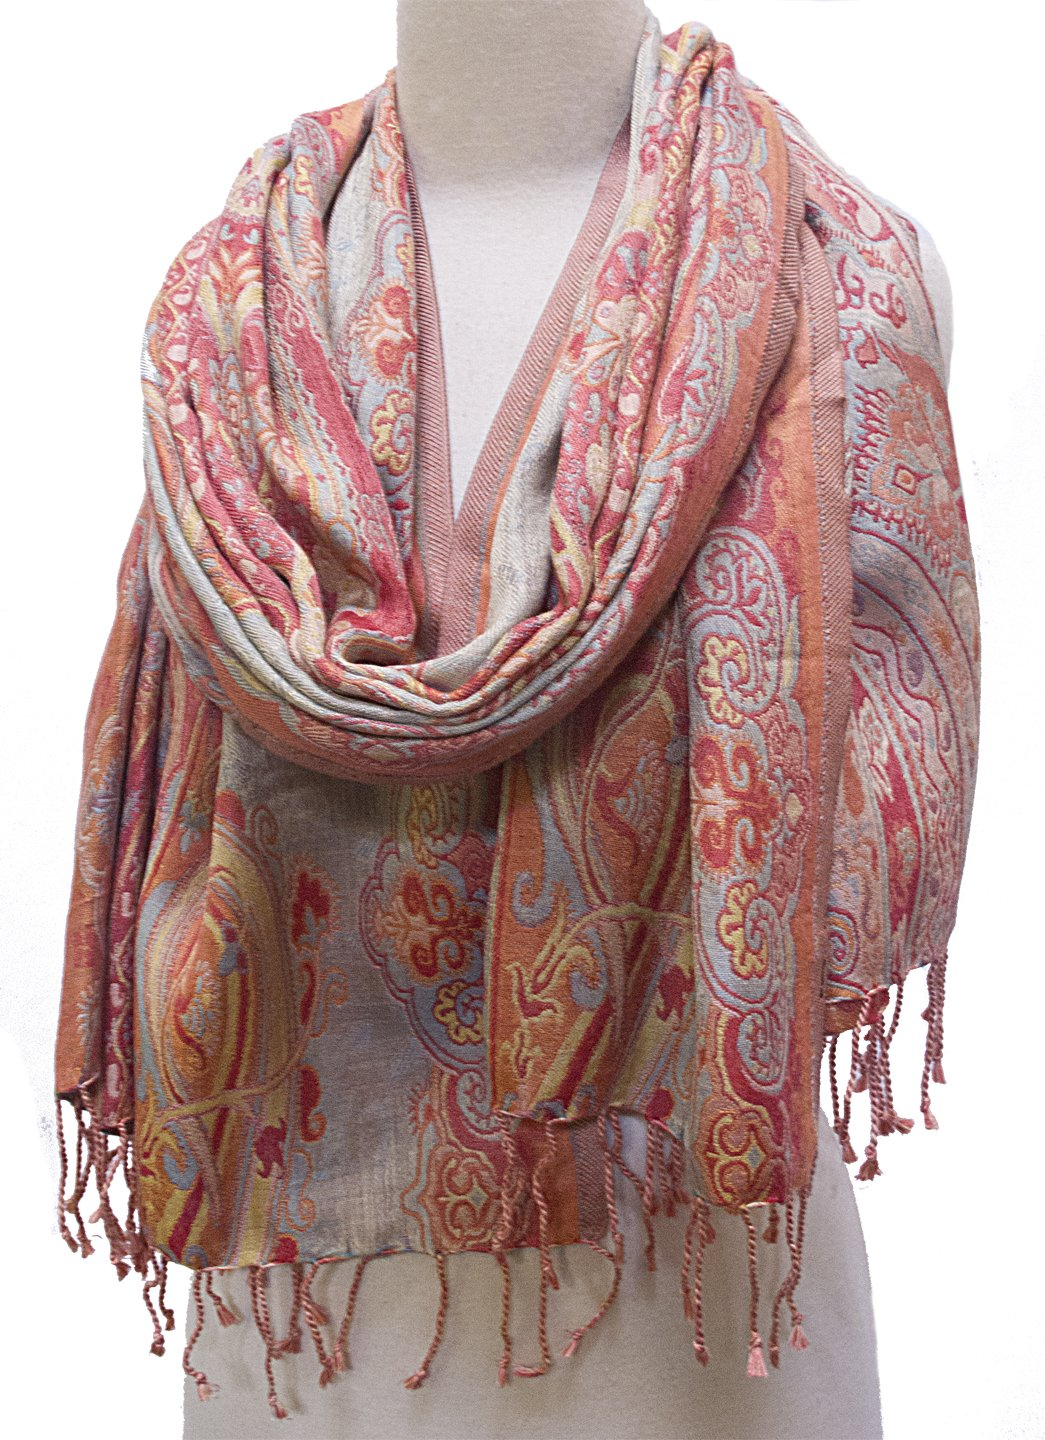 ''Silk Paisley'' Shawl Stole Scarf Wrap Pastel Pink Gold Sky Blue